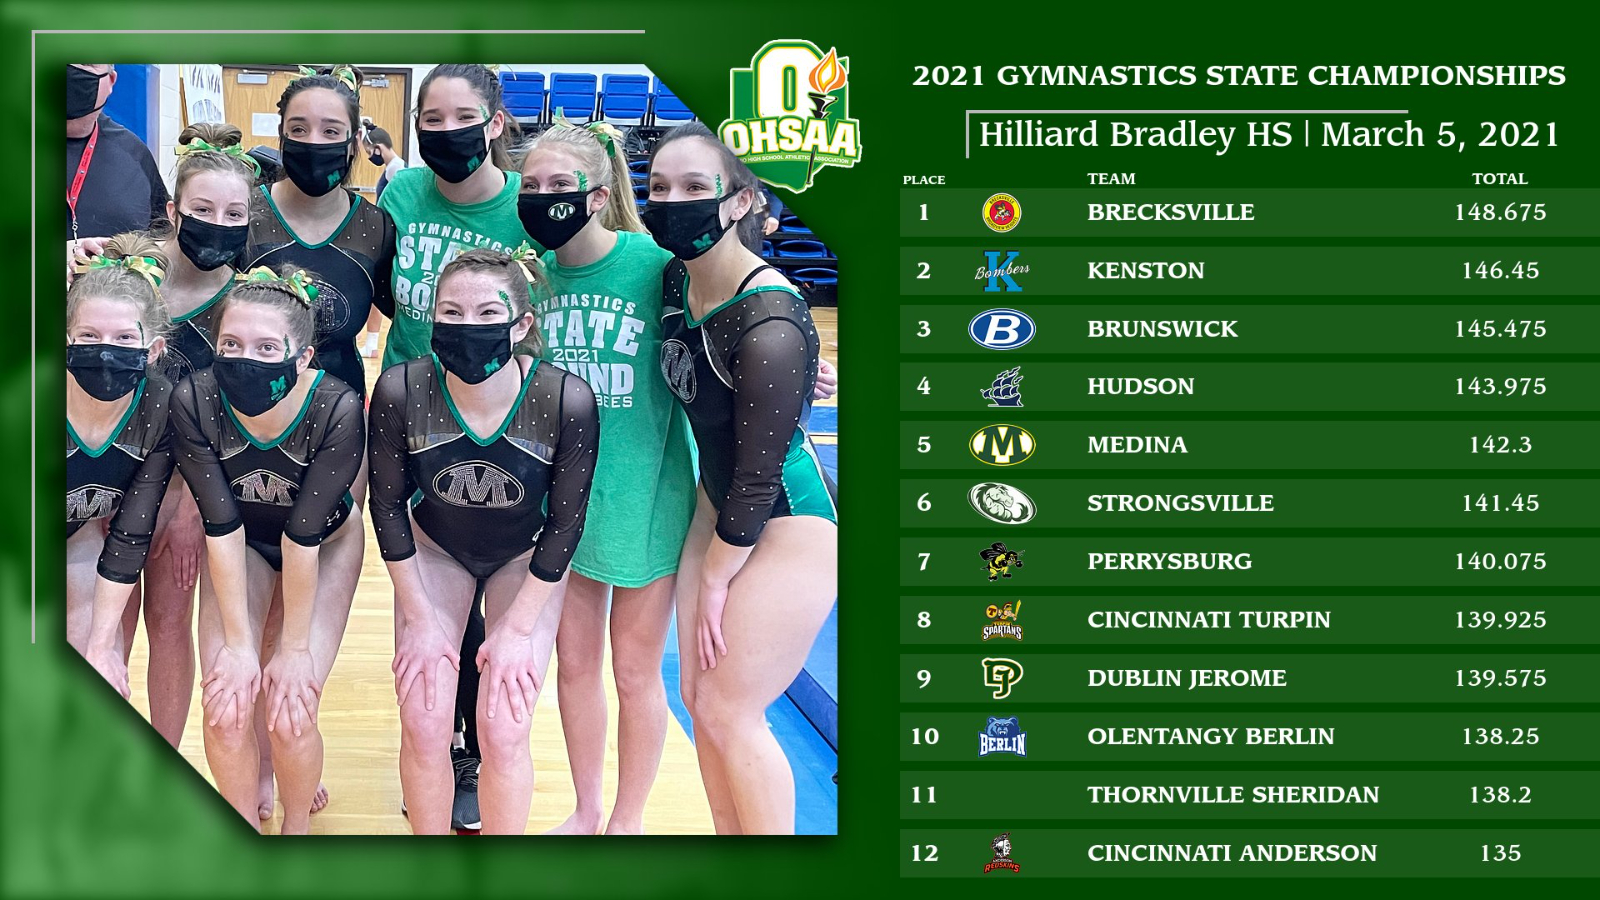 Gymnastics Team finishes in 5th Place at OHSAA State Championships